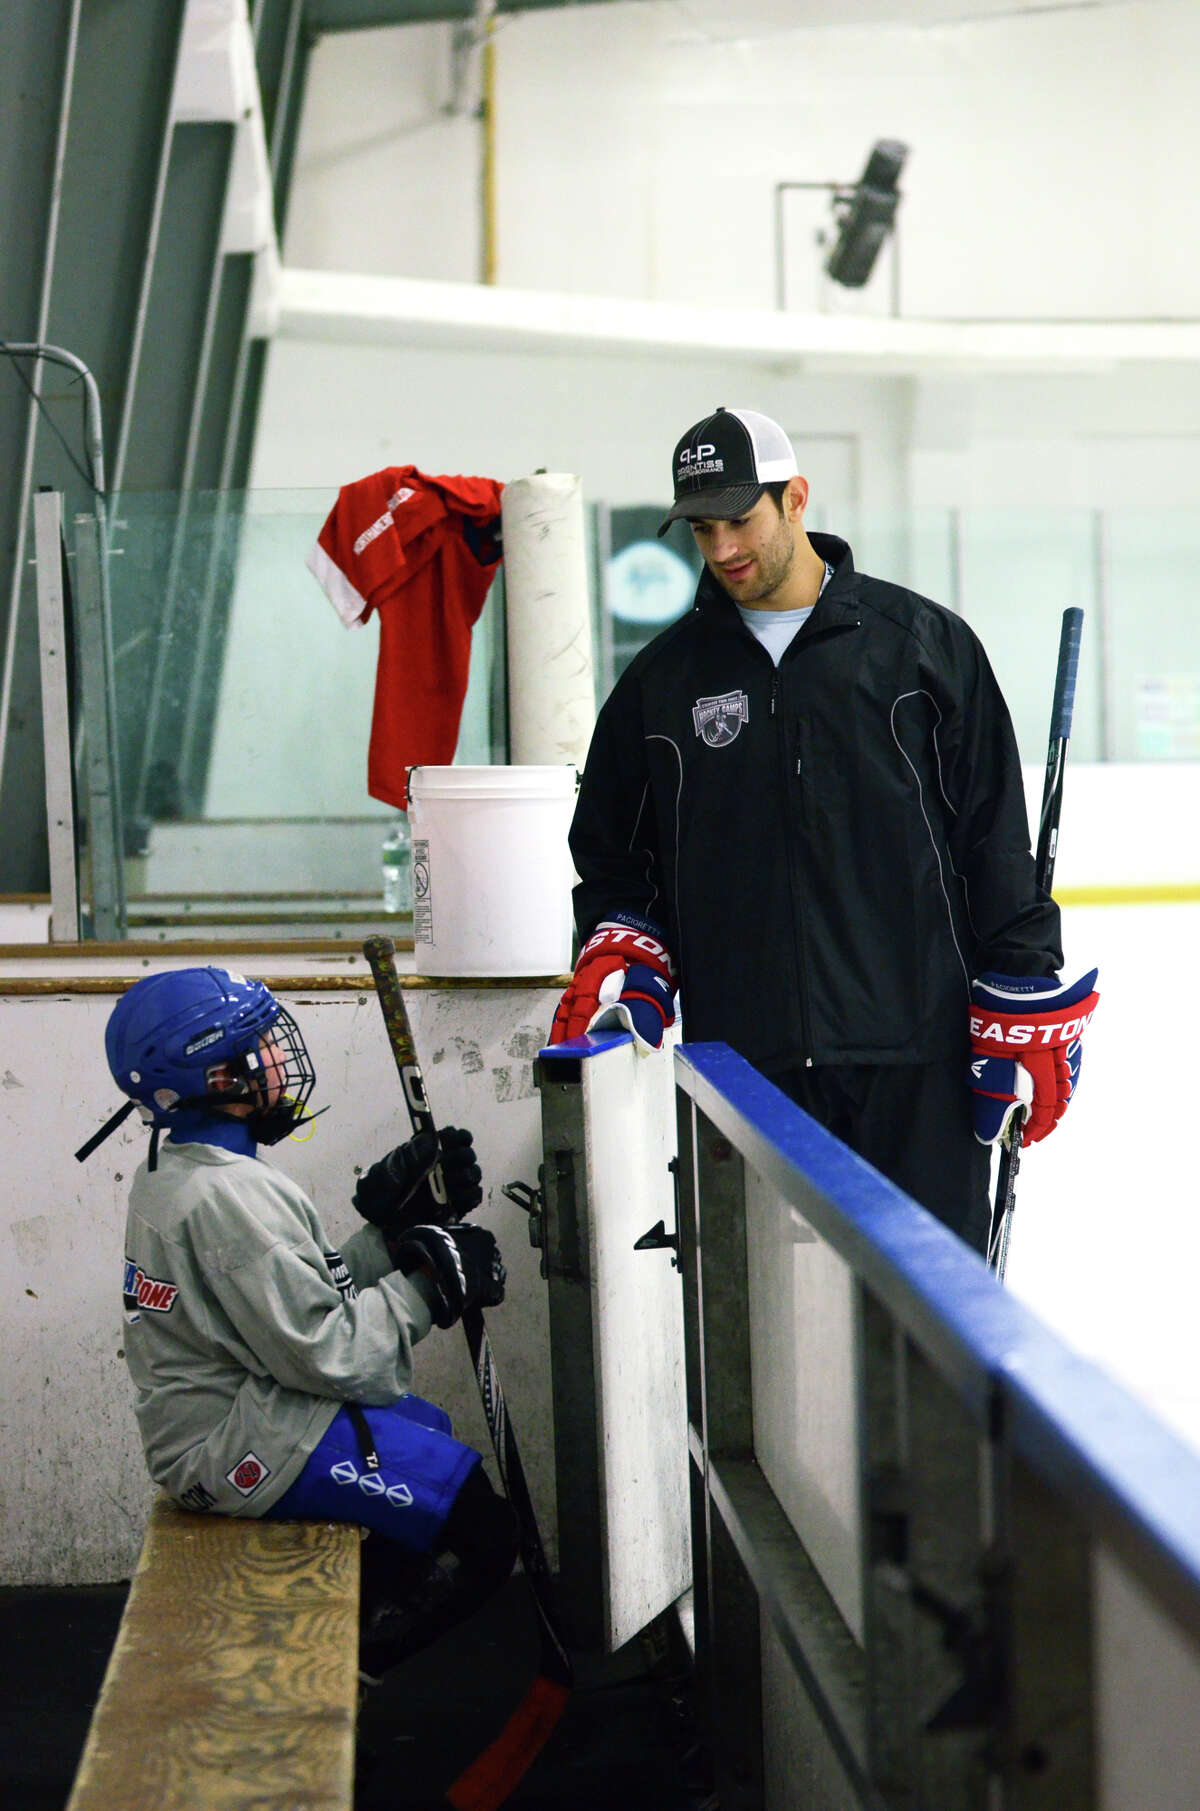 Andrew Smith, of Darien, talks to camp coach Max Pacioretty during the NHL Pee Wee ice hockey camp for students ages 11-12 at the Stamford Twin Rinks on Tuesday, Aug. 7, 2012. The weeklong camp is run by New Canaan's Max Pacioretty of the Montreal Canadiens .